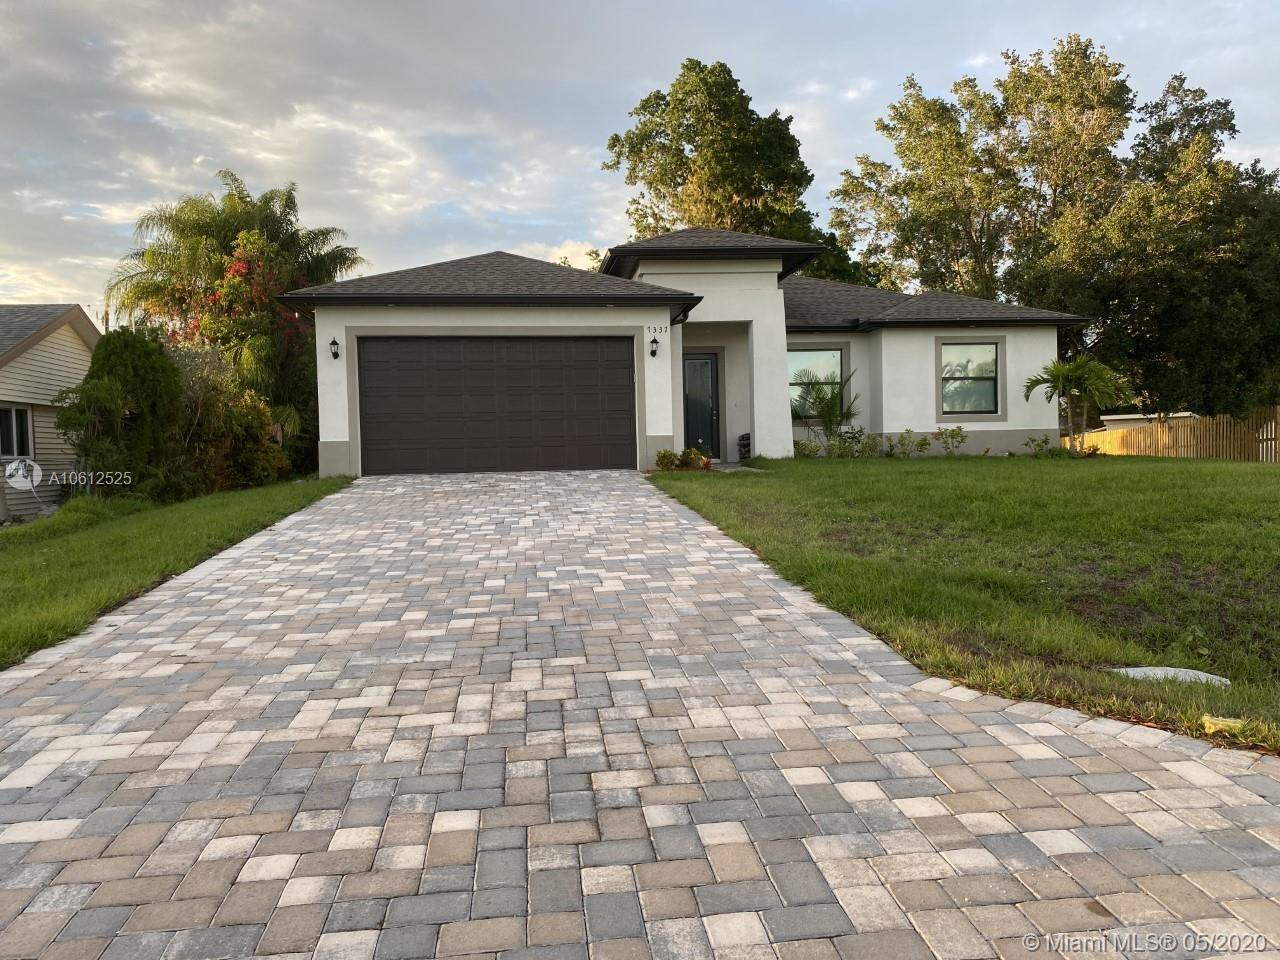 7337 Lobelia Rd, Other City - In The State Of Florid, FL, 33967